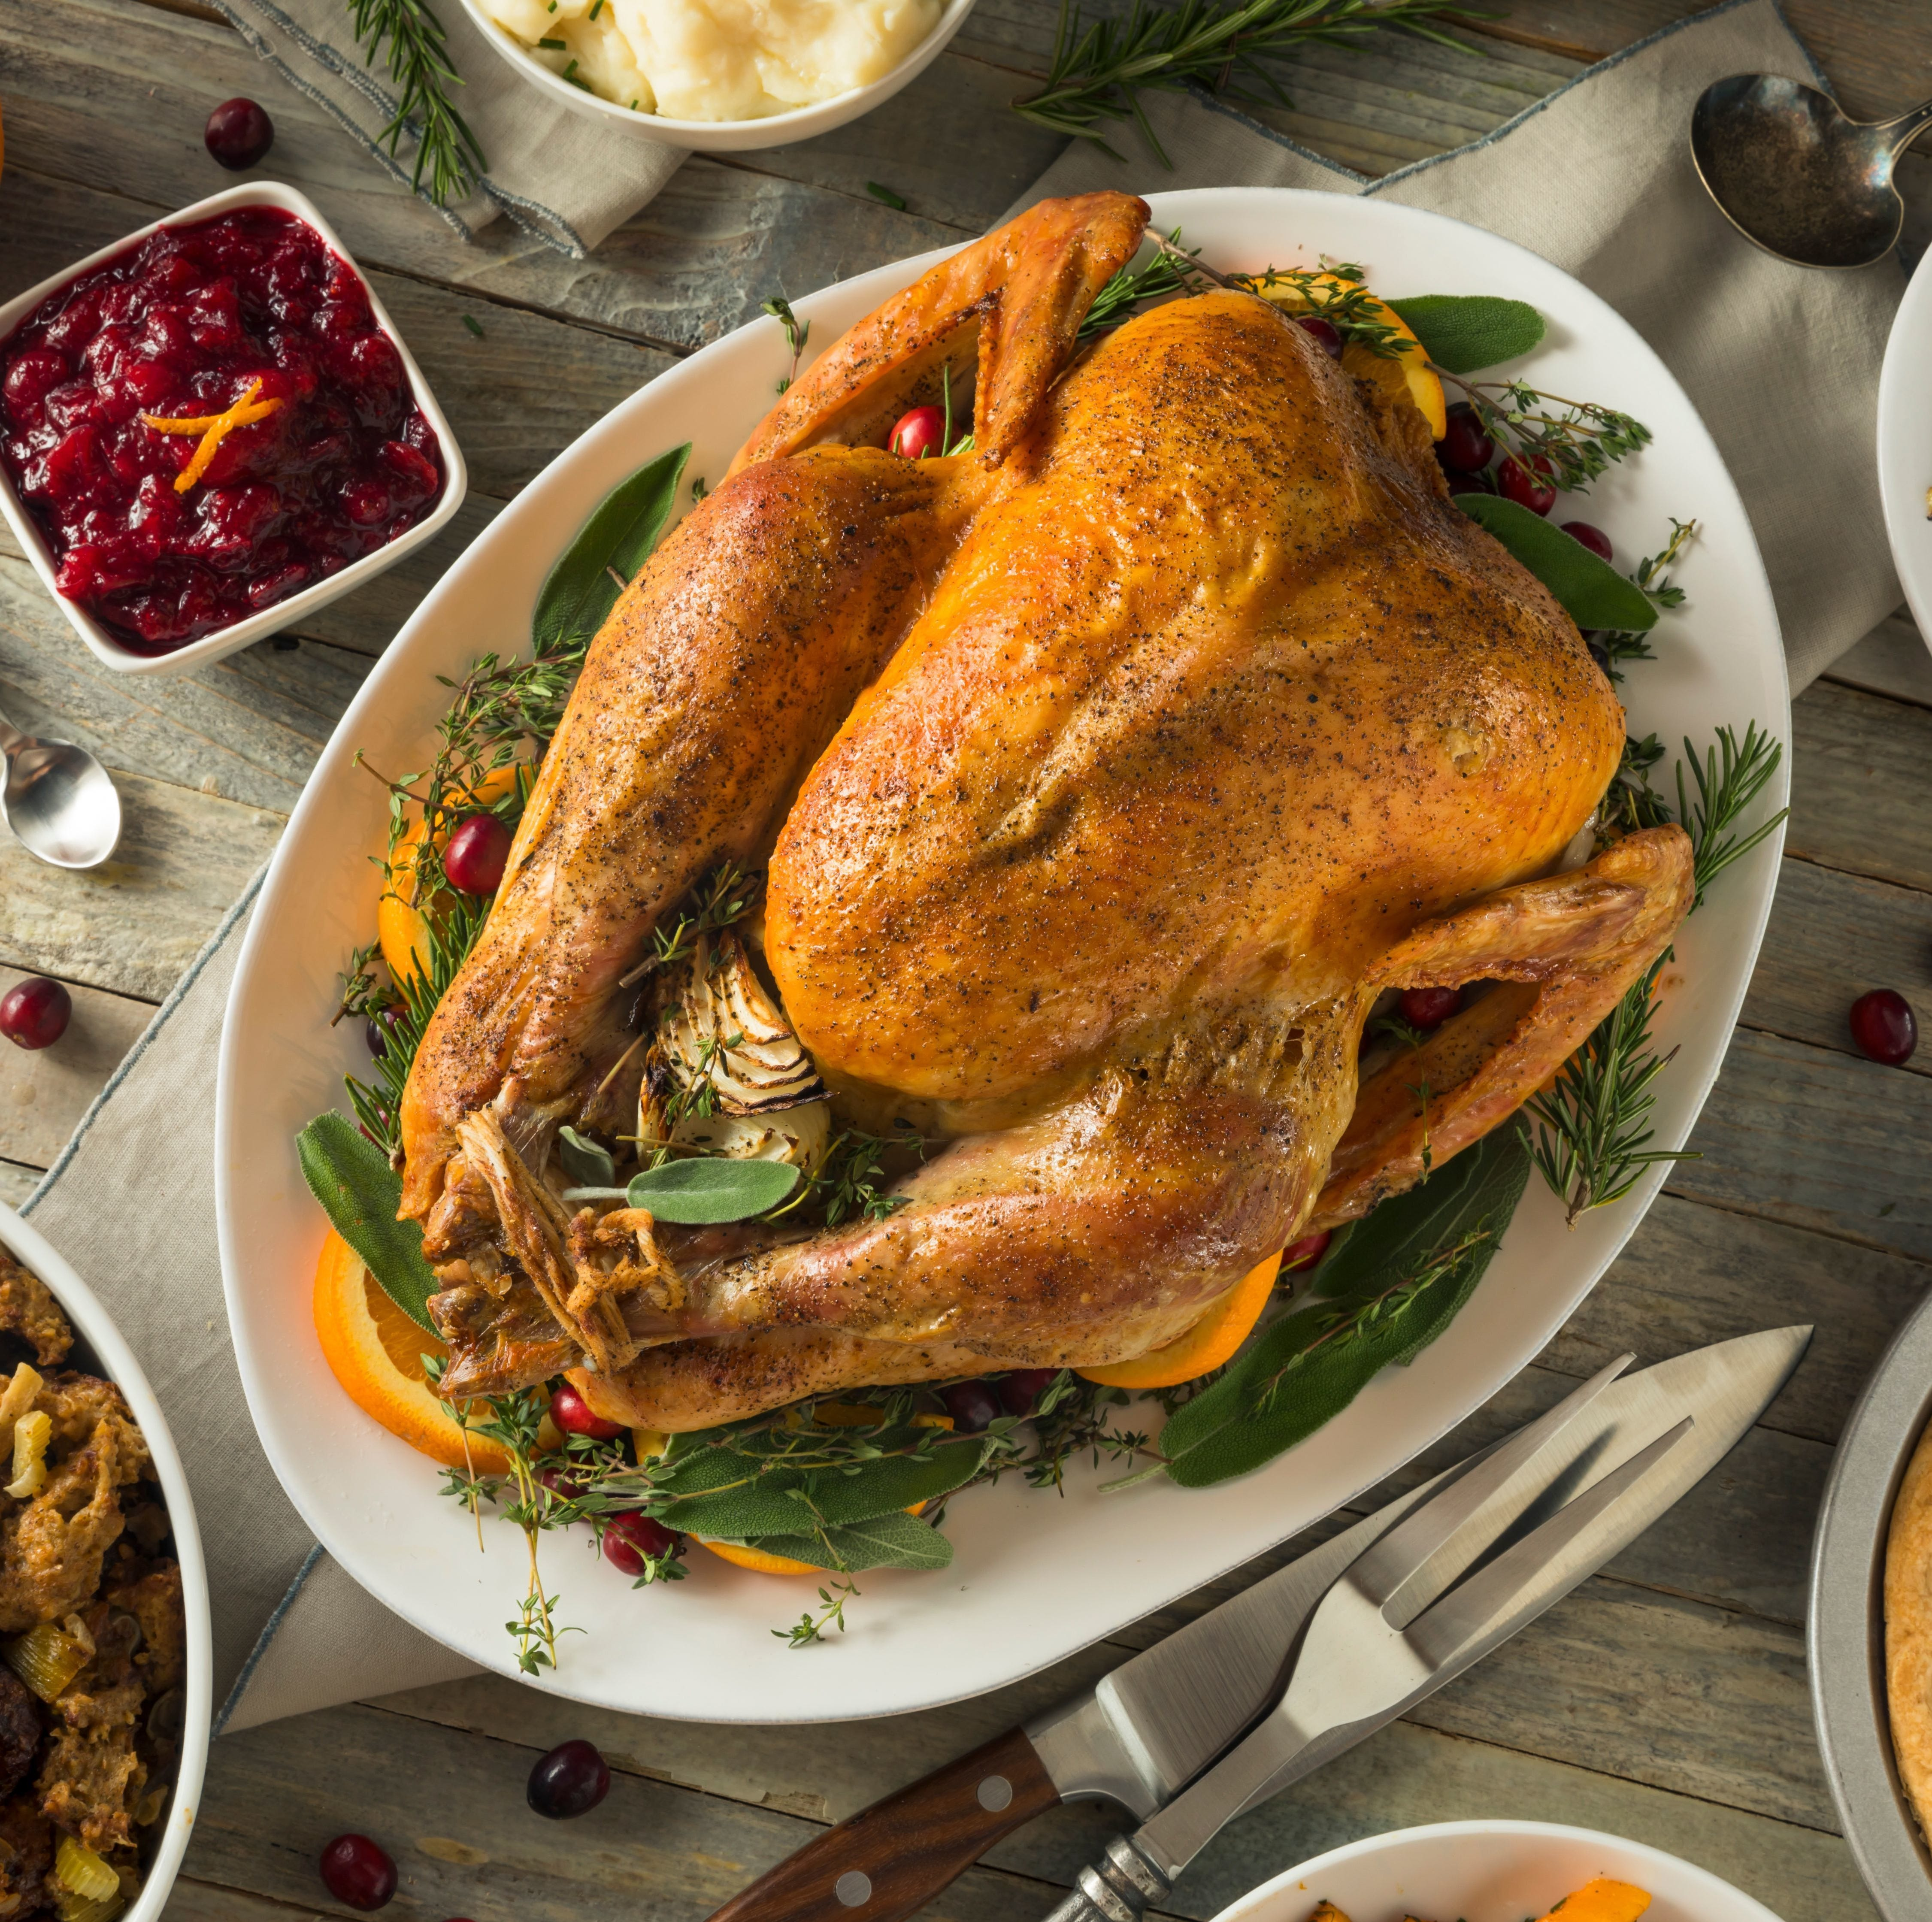 Thanksgiving recipes, turkey recipes and other trending food for the holidays